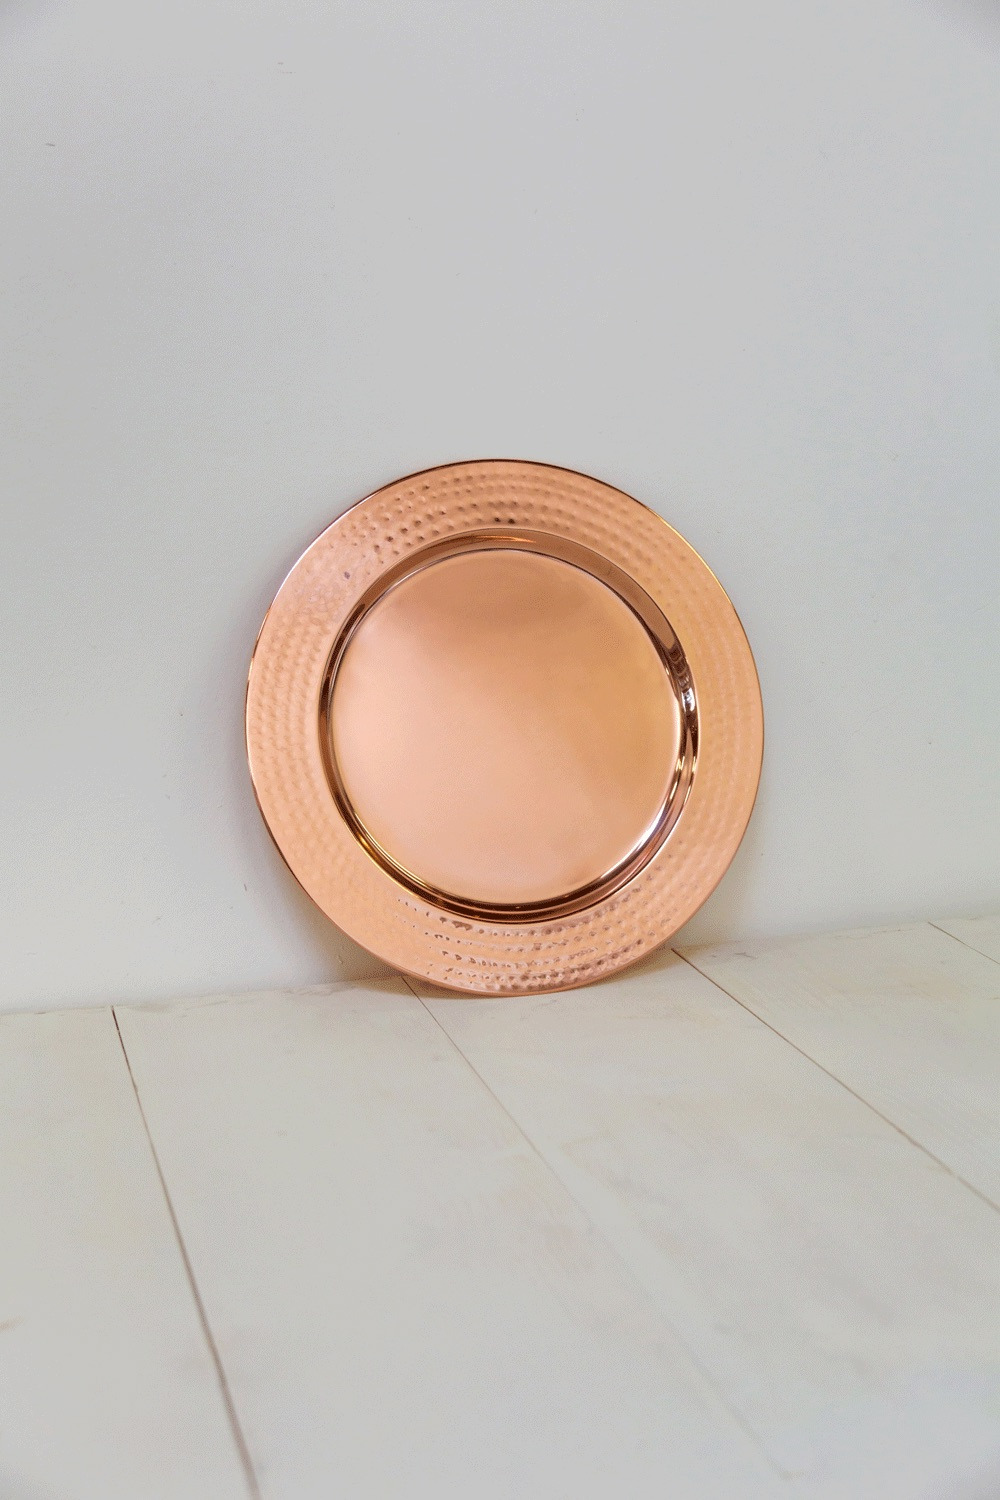 $7 Rose Gold Charger